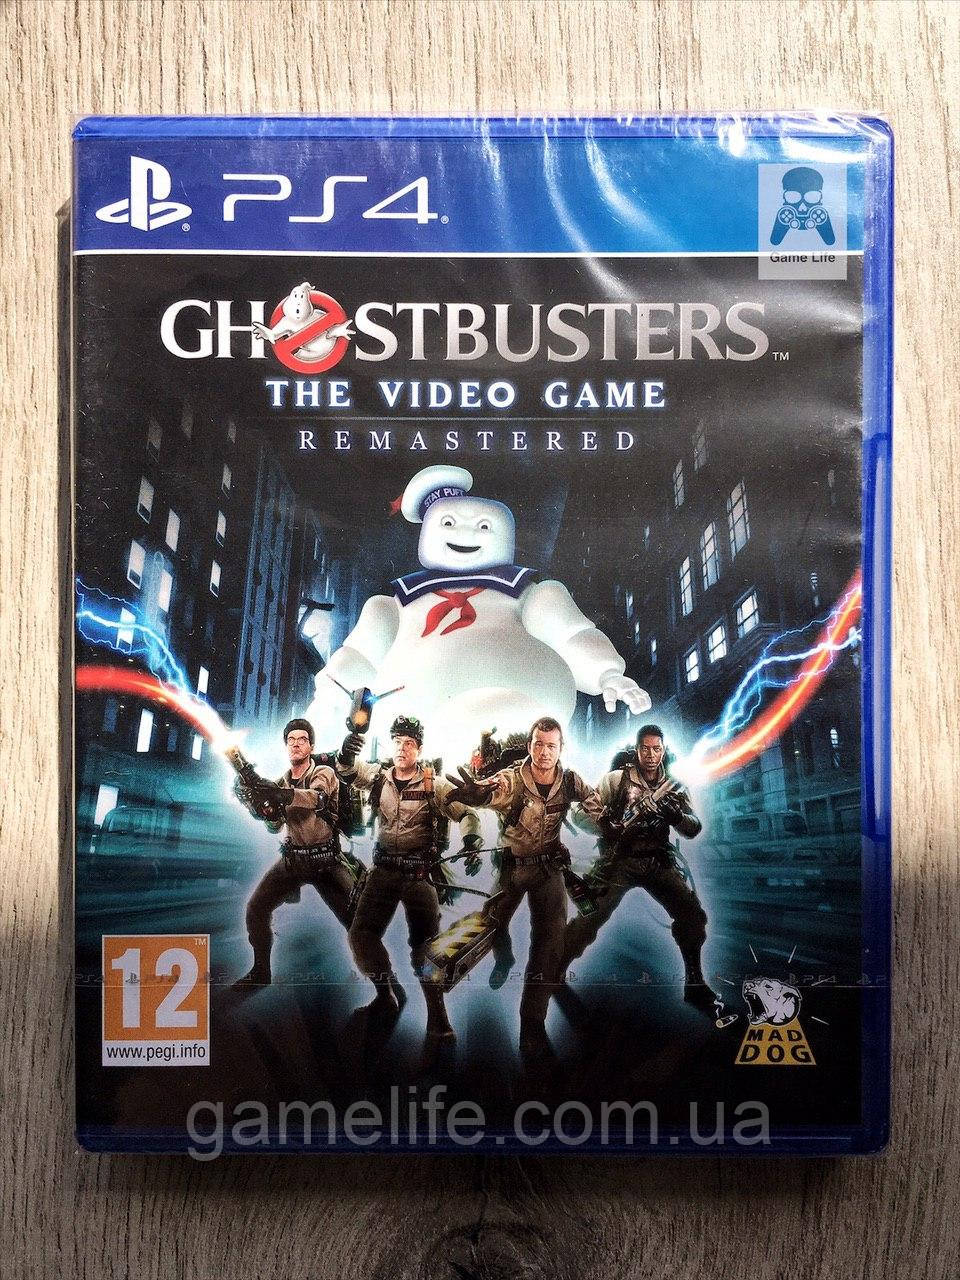 Ghostbusters The Video Game Remastered (англ.) PS4